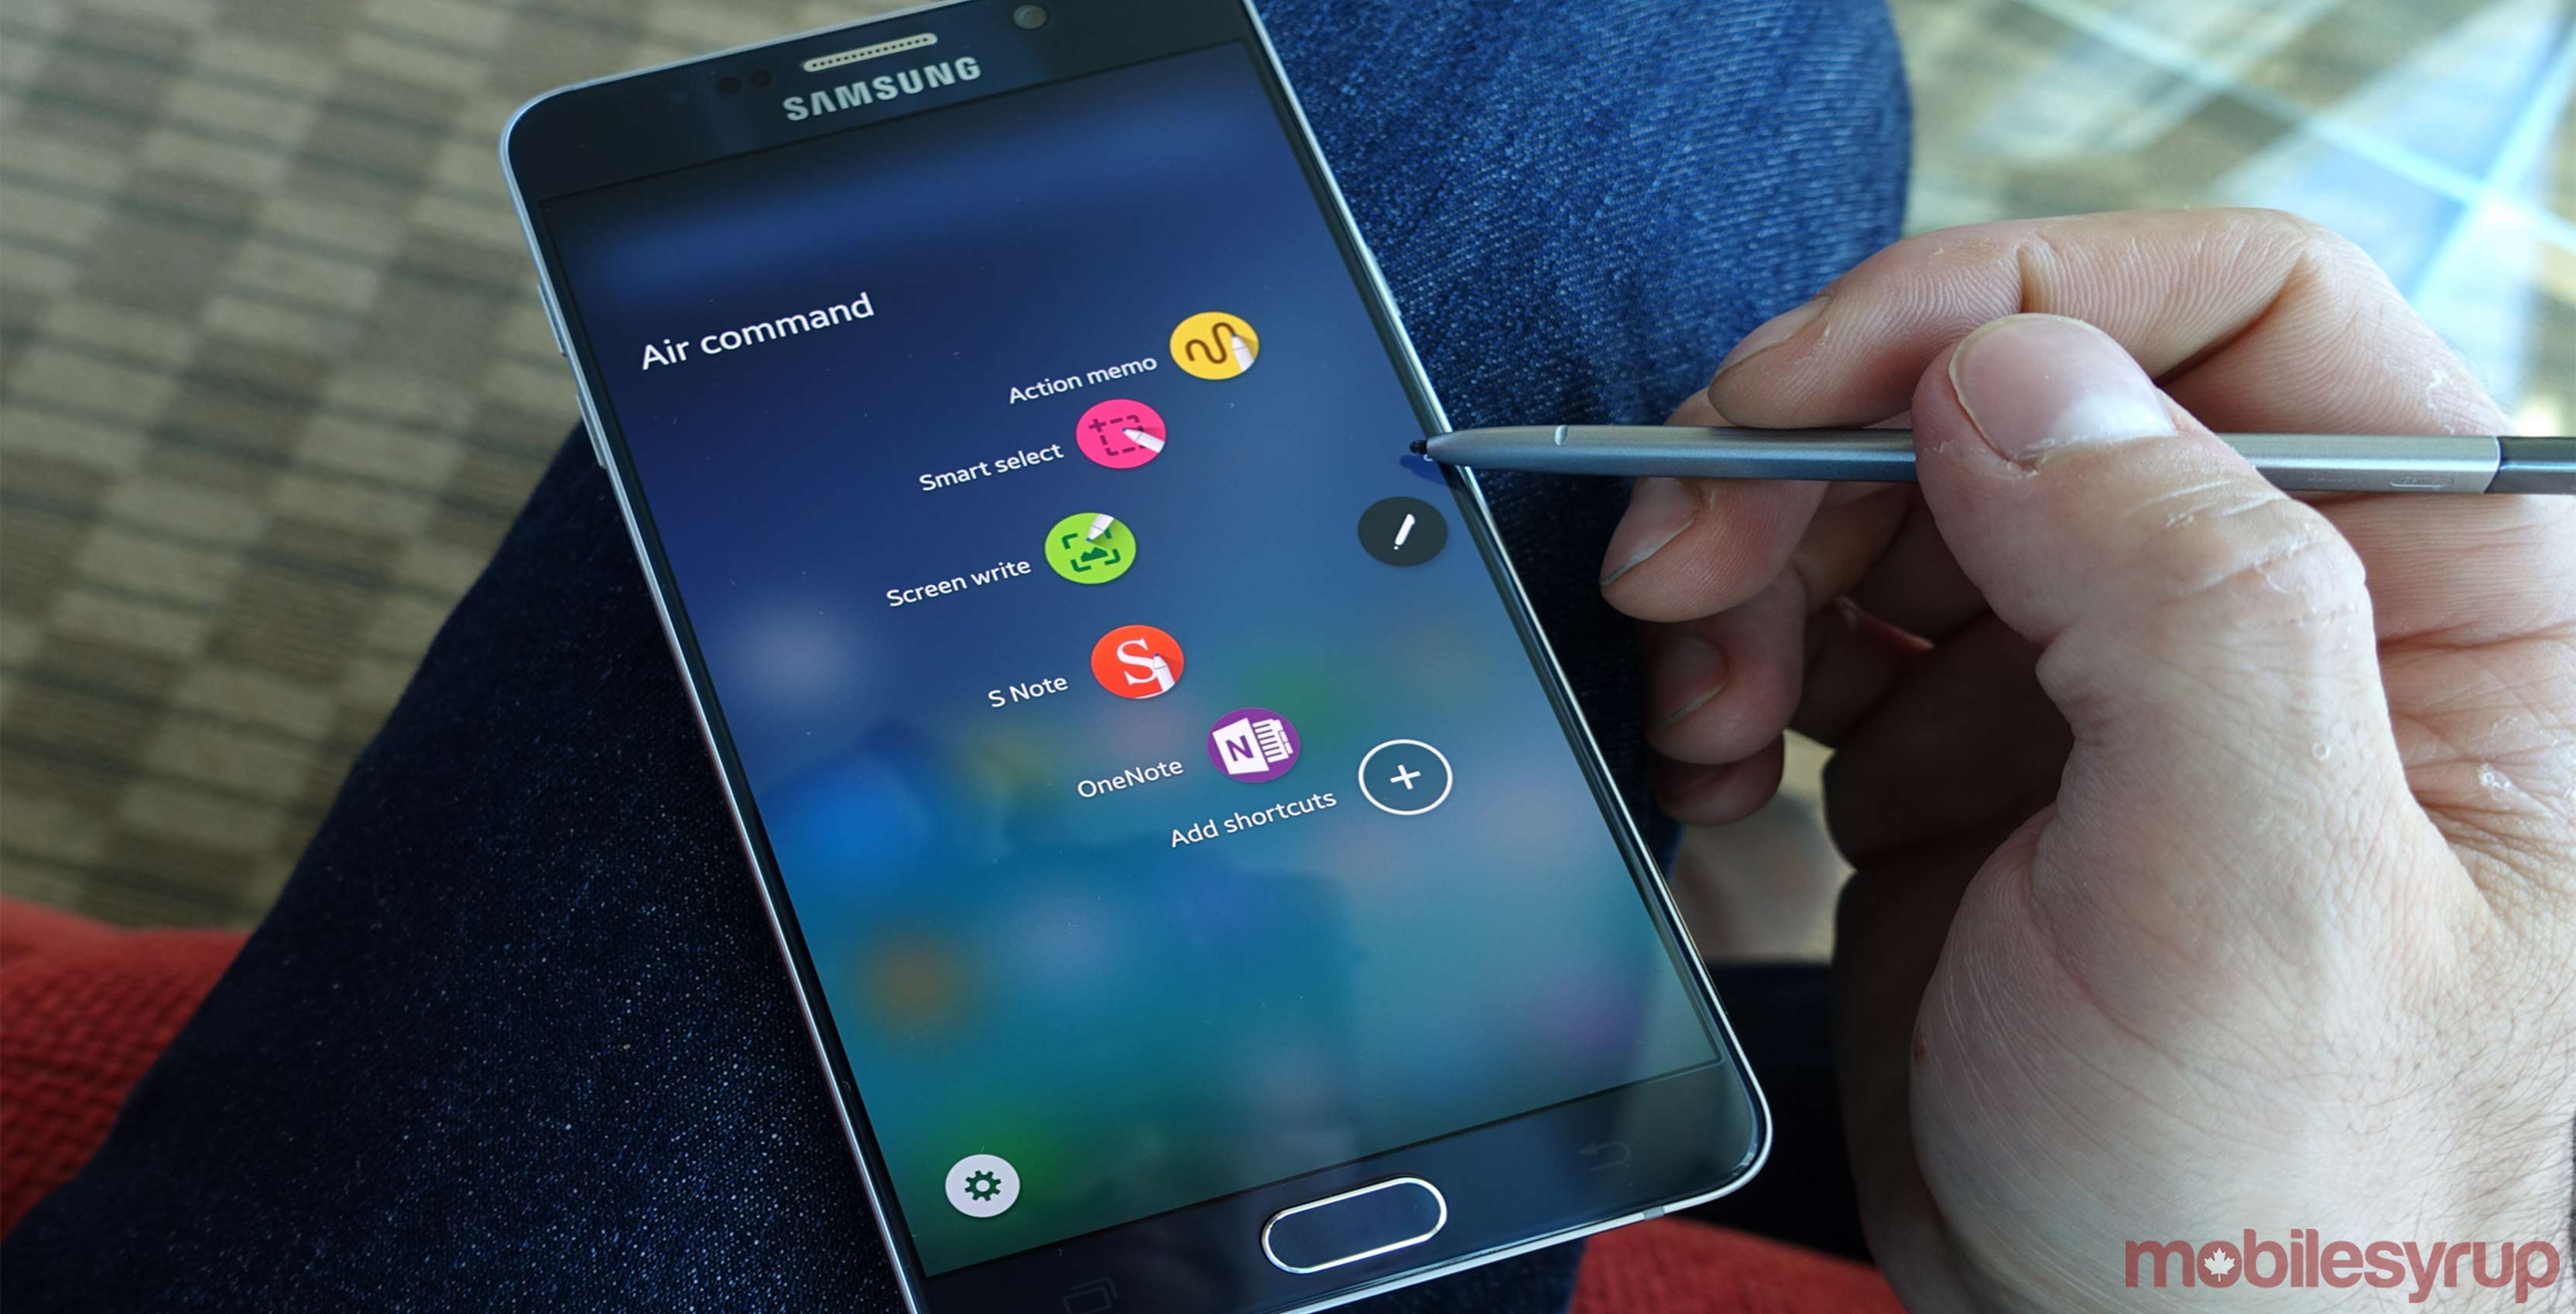 Samsung Galaxy Note 5 smartphone with stylus